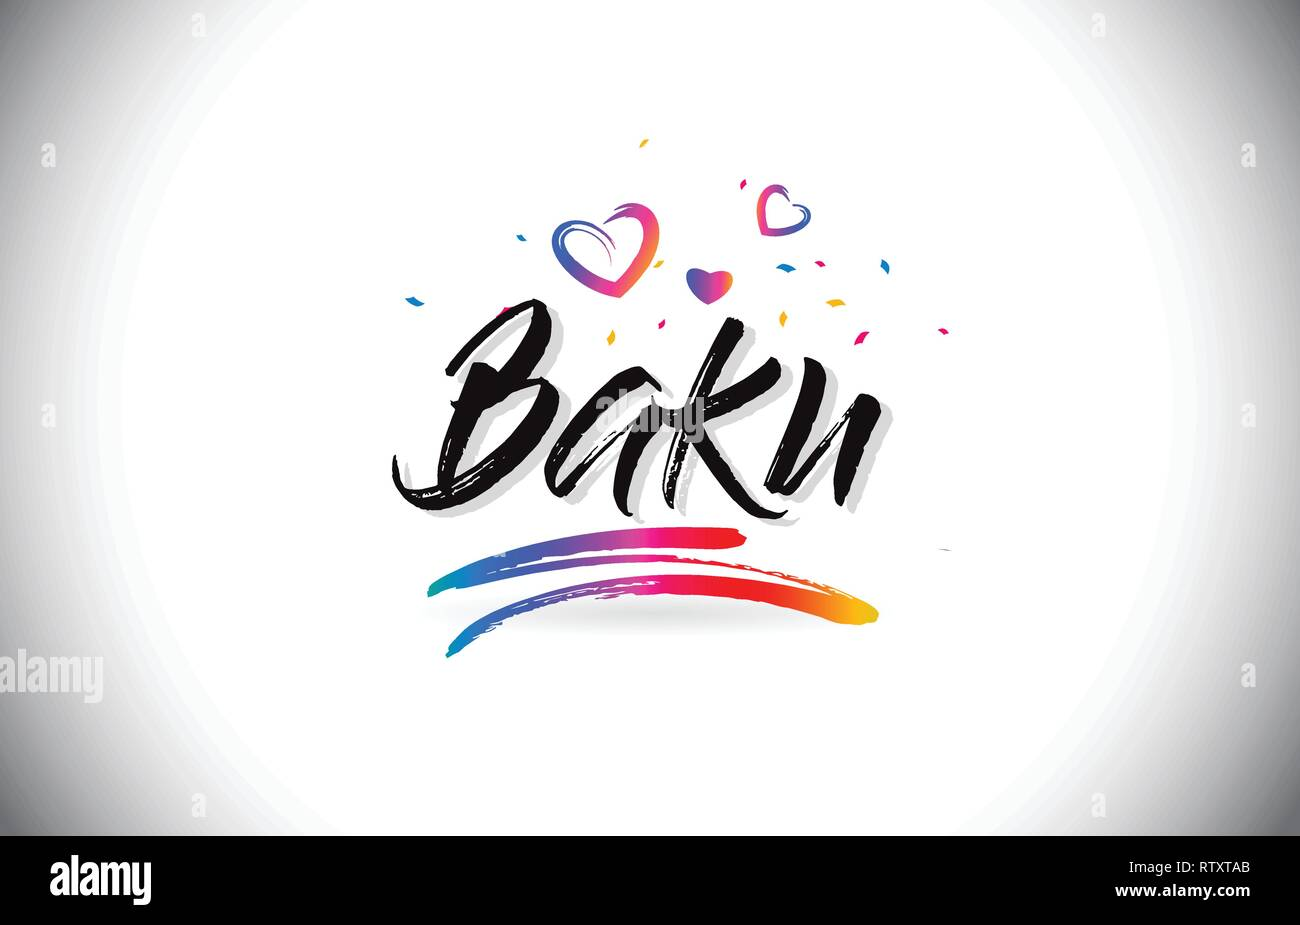 Baku Welcome To Word Text with Love Hearts and Creative Handwritten Font Design Vector Illustration. - Stock Vector